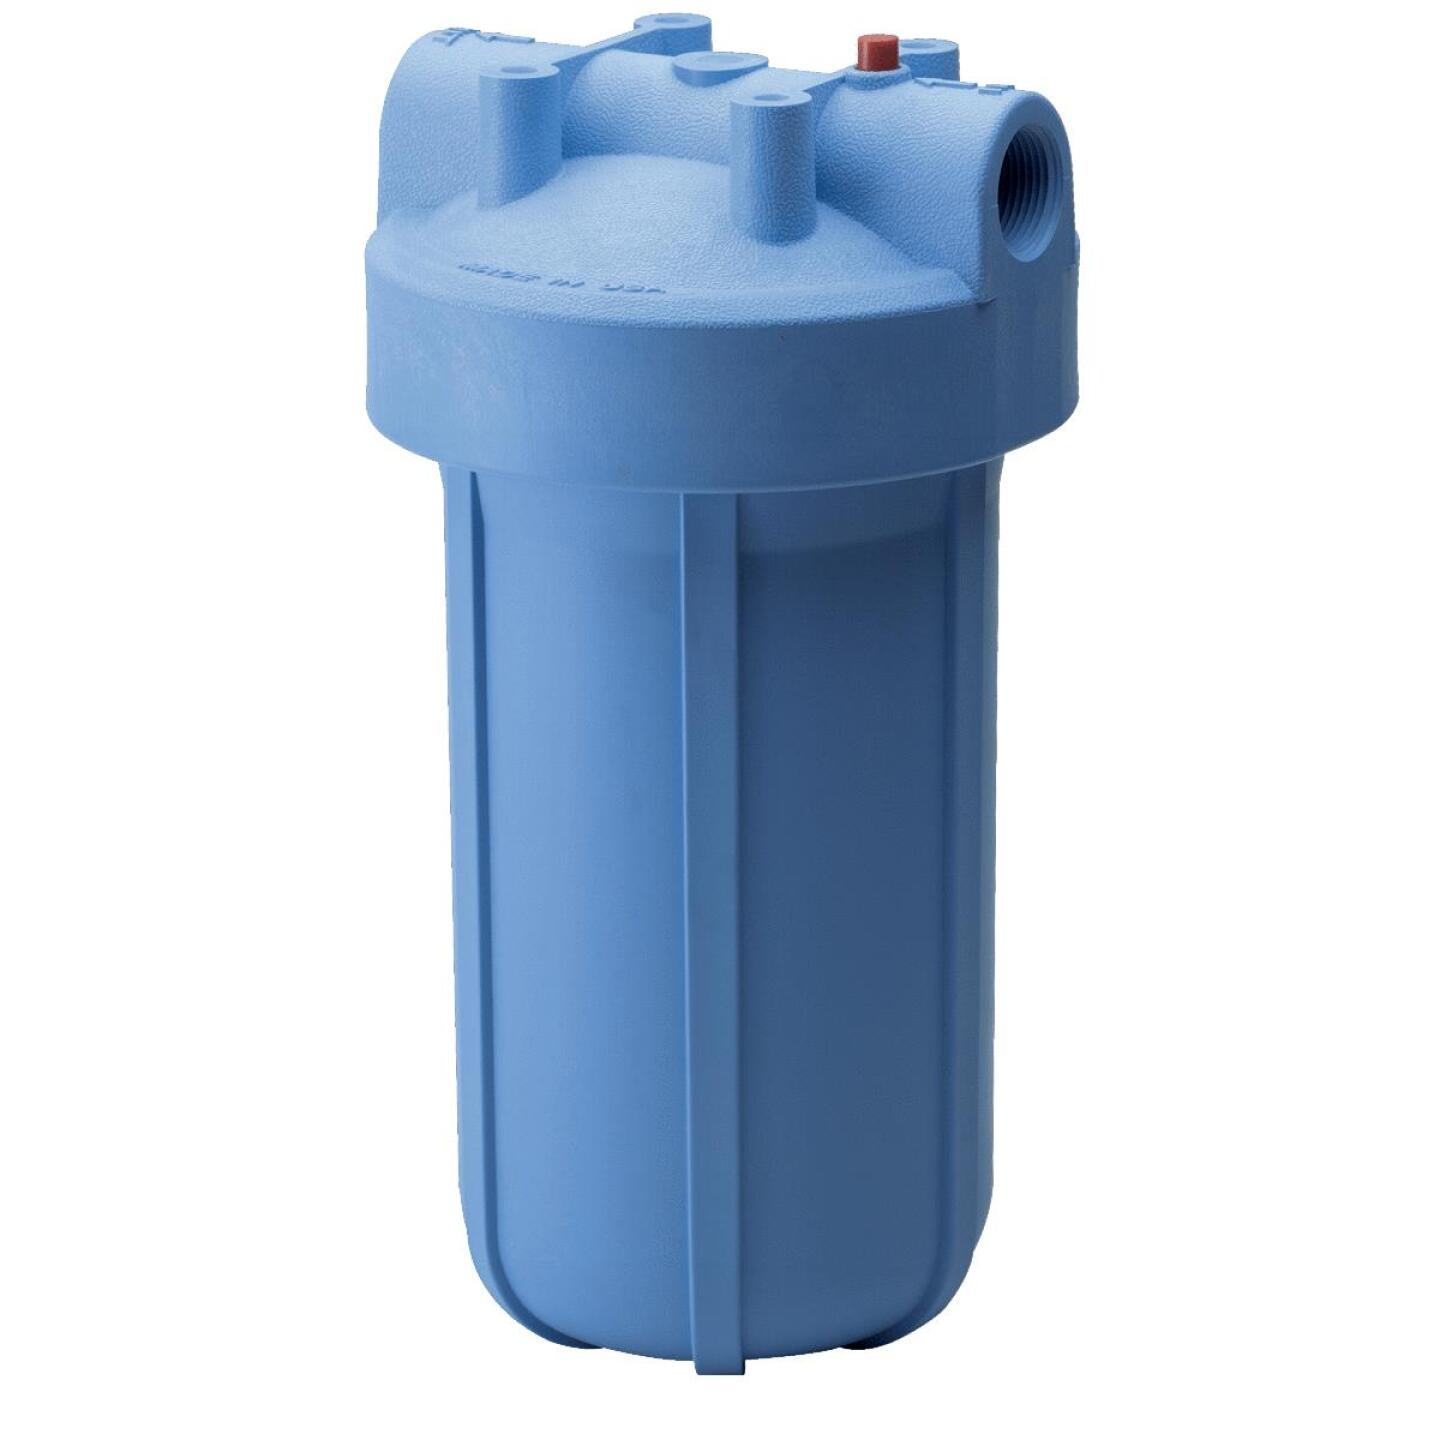 Culligan Heavy Duty 1 In. Whole House Sediment Water Filter Image 1